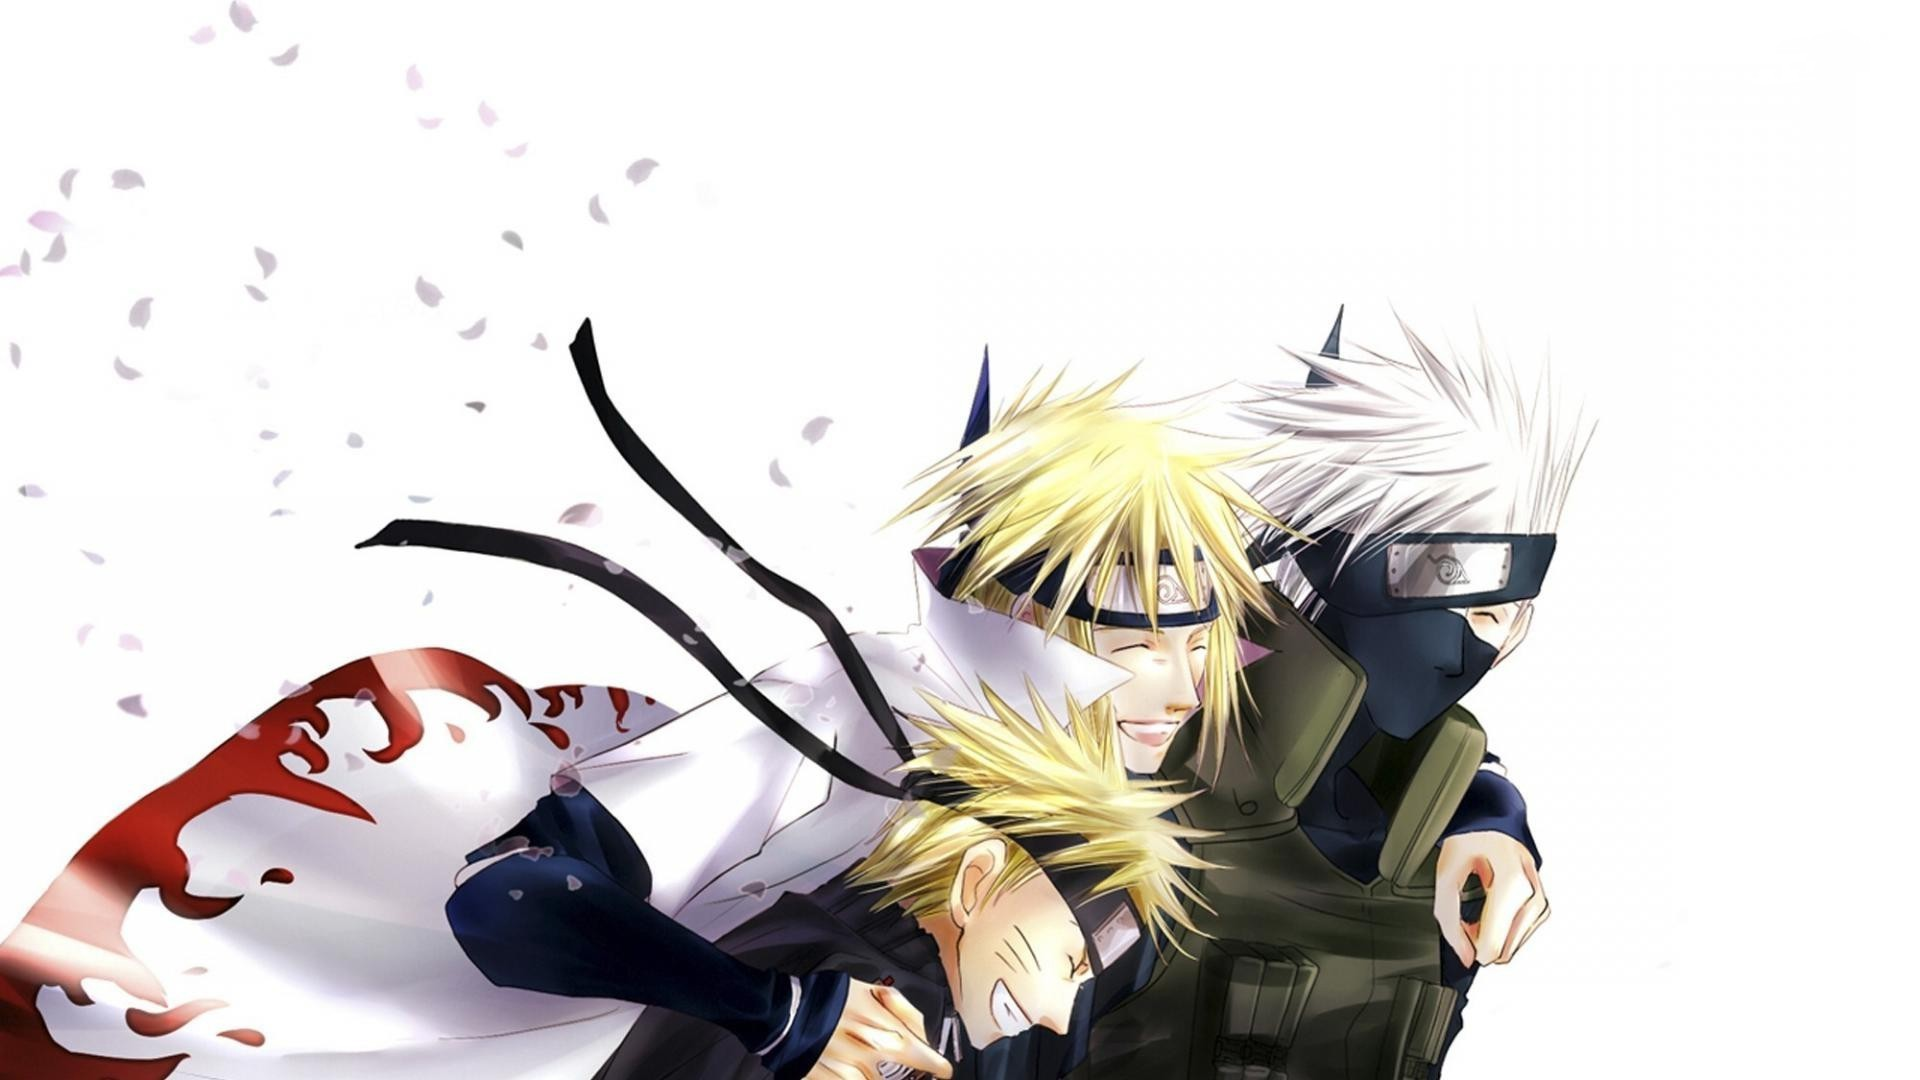 Kakashi Wallpaper Iphone Naruto Wallpaper 1920x1080 183 ① Download Free Stunning Full